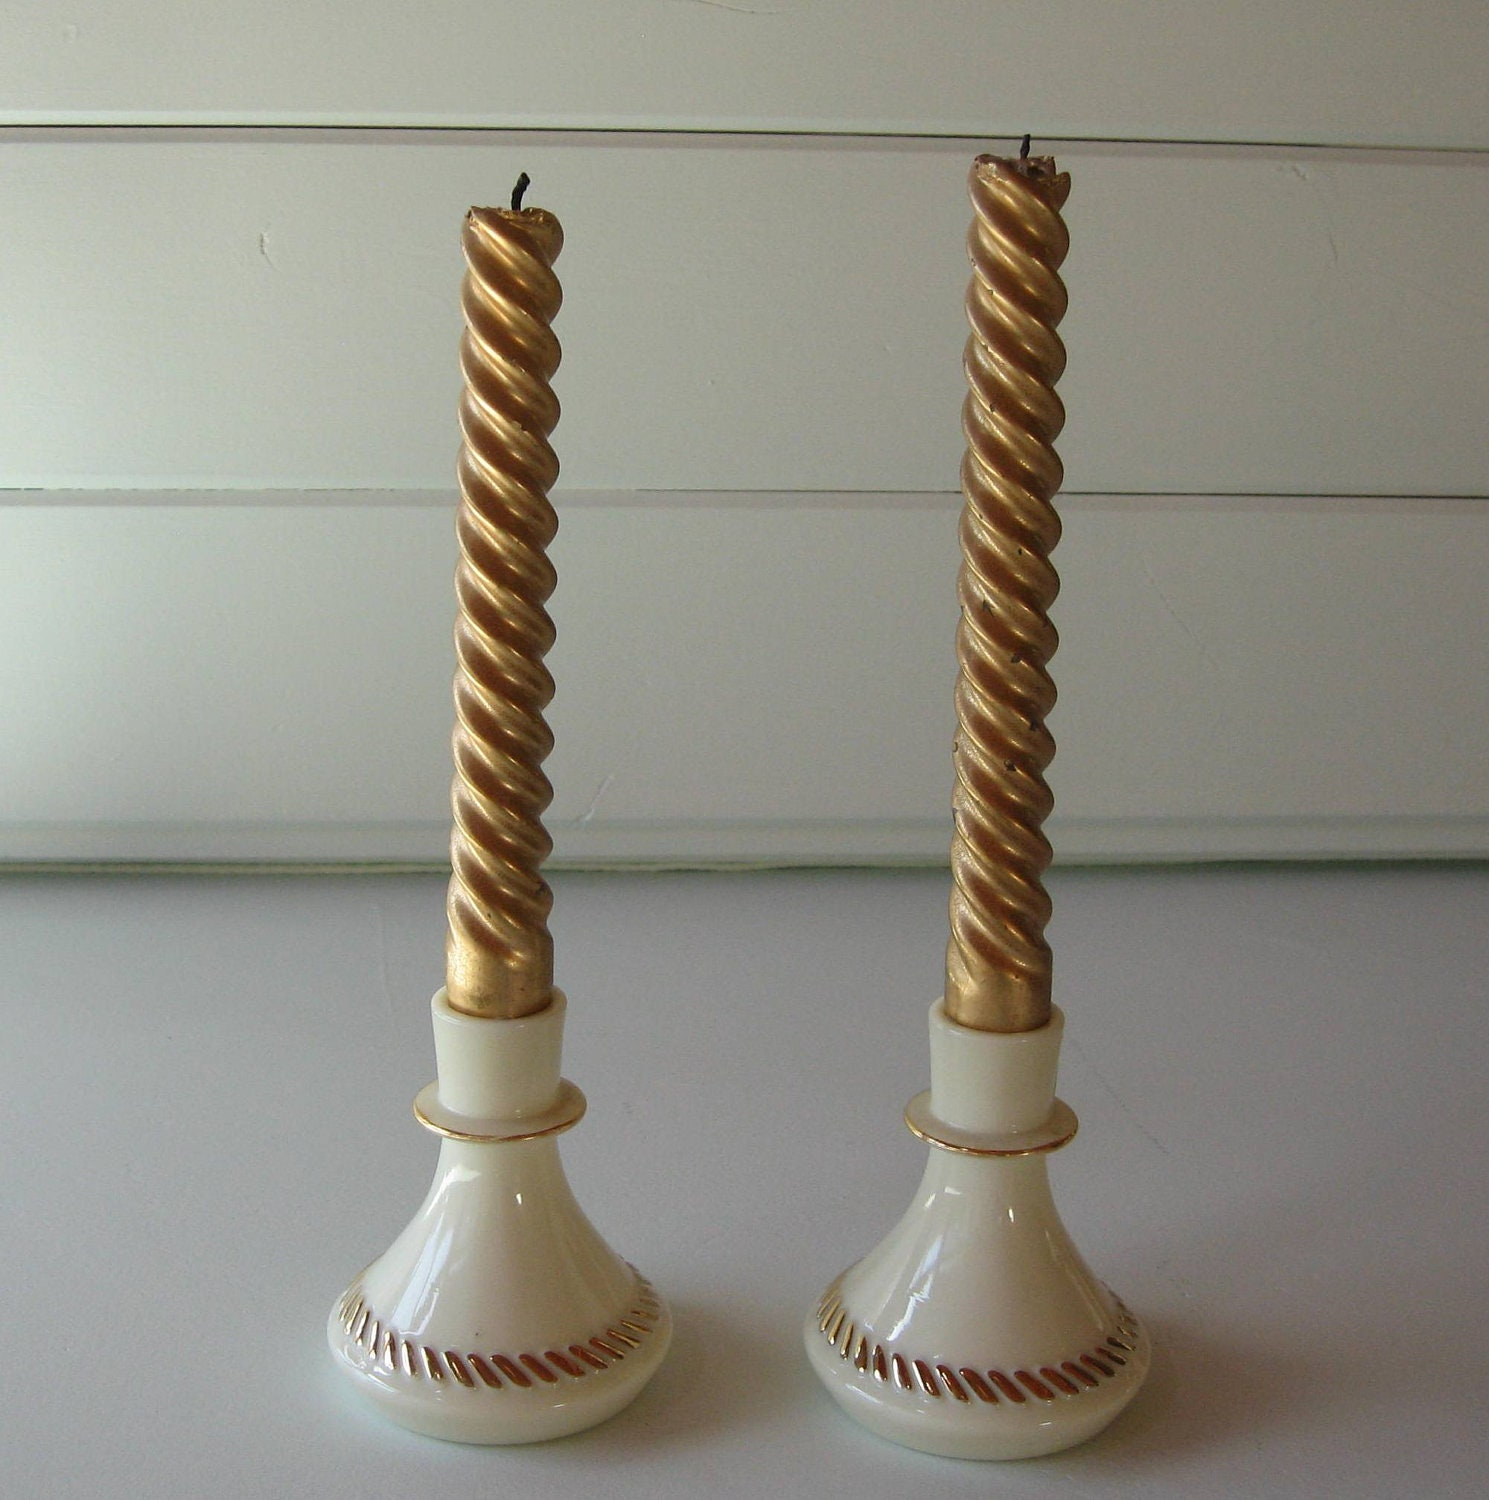 Candlestick from natural materials 29